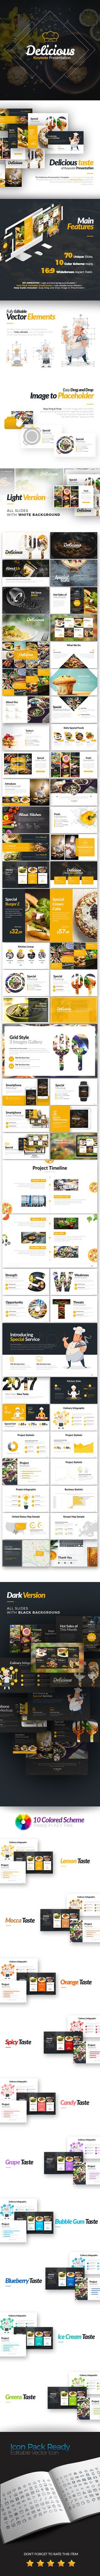 Delicious Keynote Presentation Template - #Keynote Templates #Presentation Templates Download here: https://graphicriver.net/item/delicious-keynote-presentation-template/19679093?ref=alena994